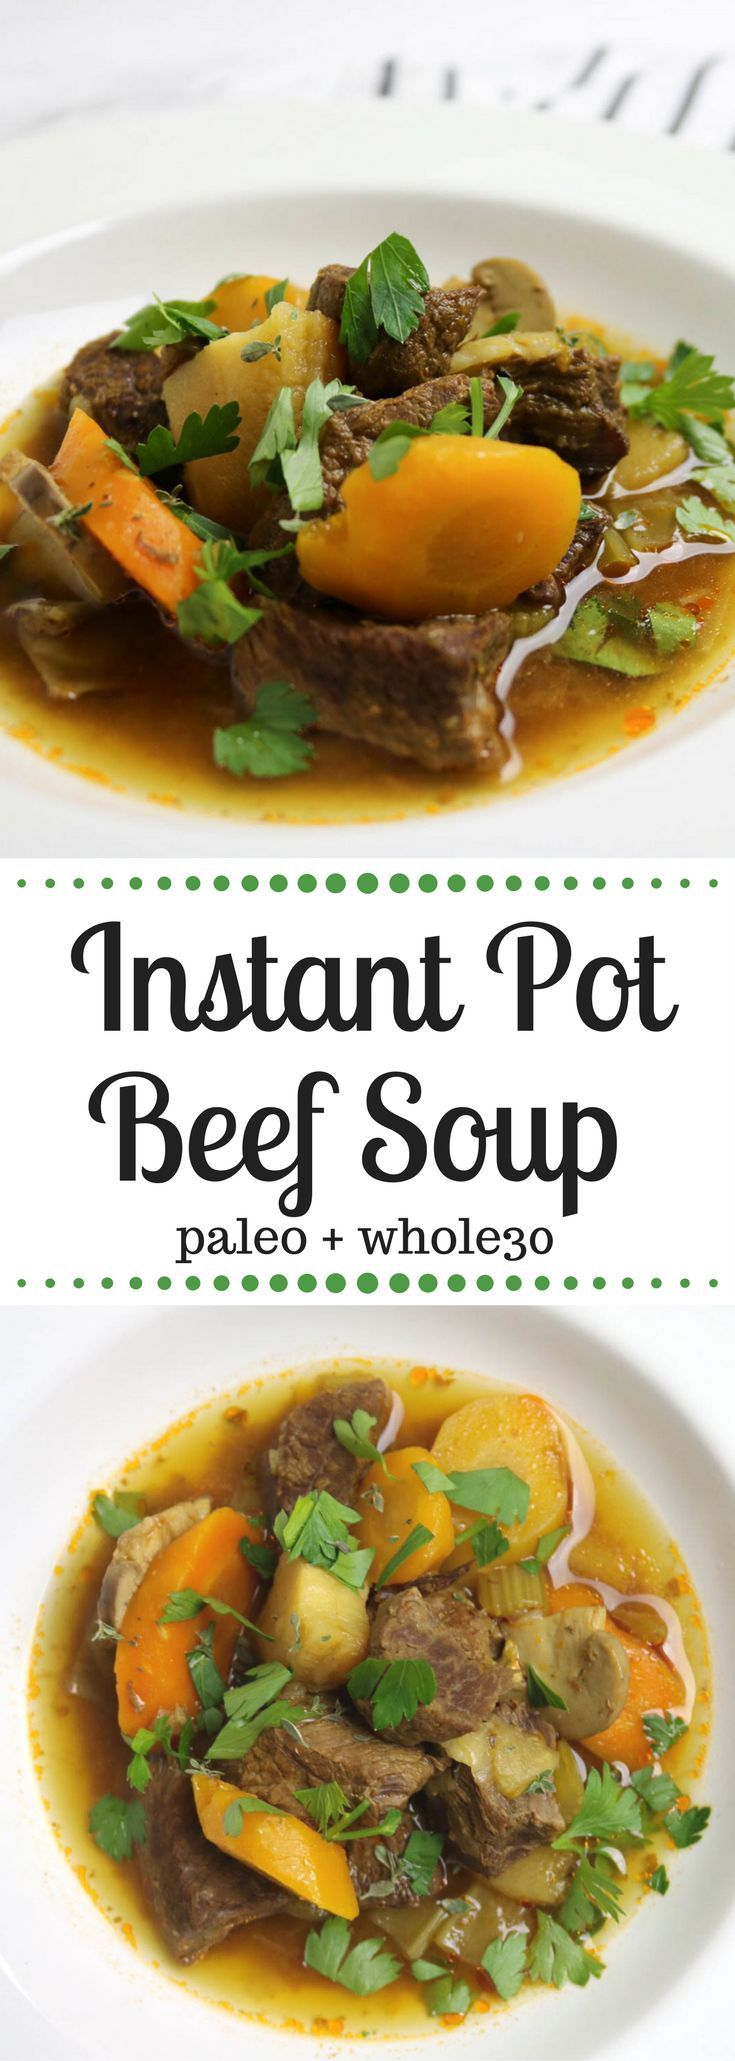 Instant Pot Paleo Beef Soup - From Pasta to Paleo